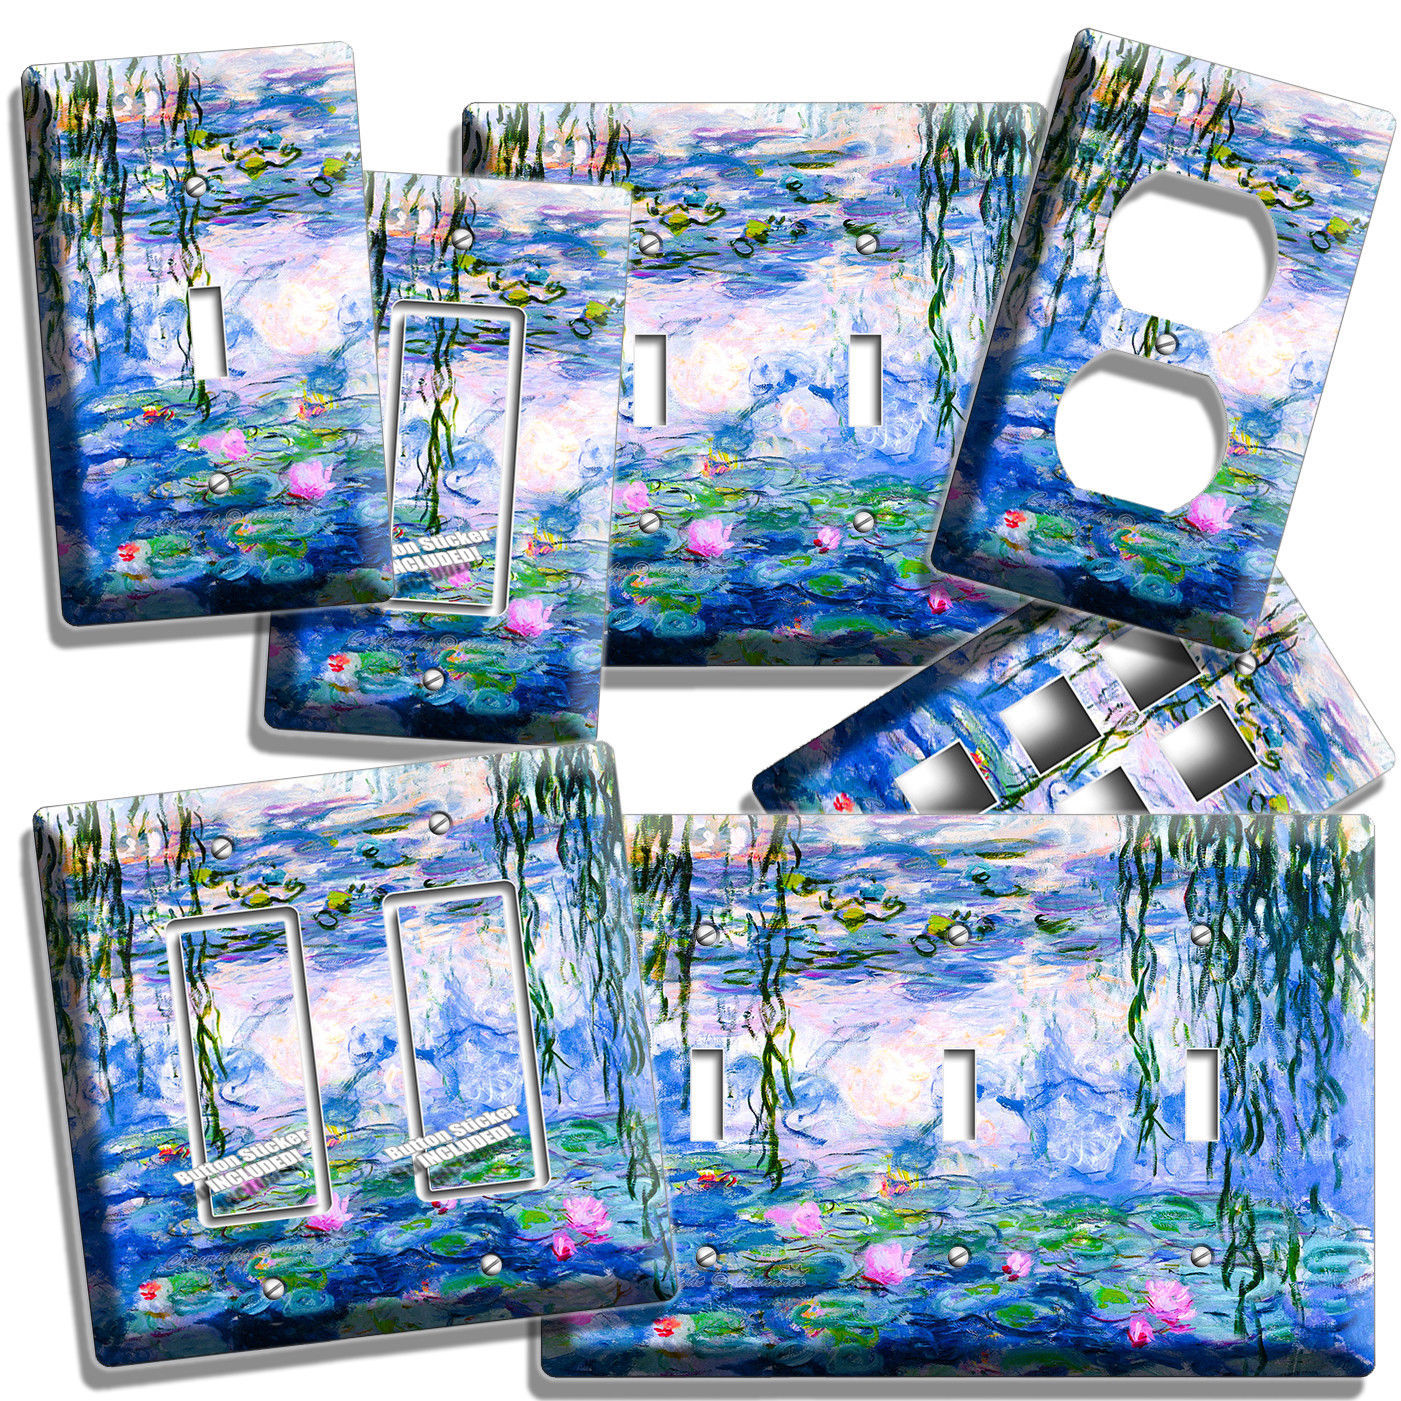 WATER LILIES CLAUDE MONET PAINTING LIGHT SWITCH OUTLET WALL PLATE ROOM ART DECOR - $9.99 - $21.99